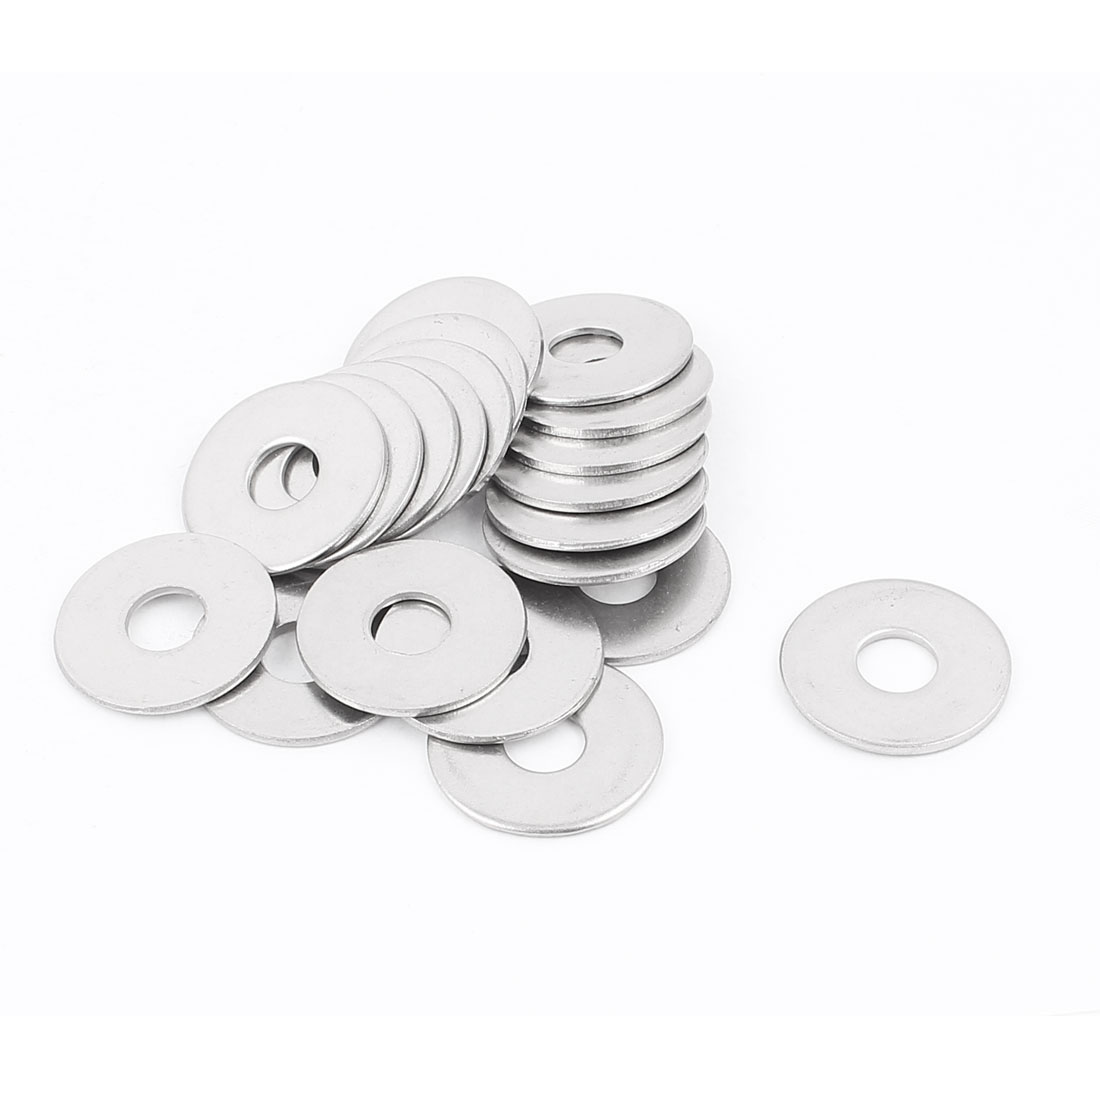 8mm Hole Size 304 Stainless Steel Plain Finish Flat Washer Gasket 20pcs